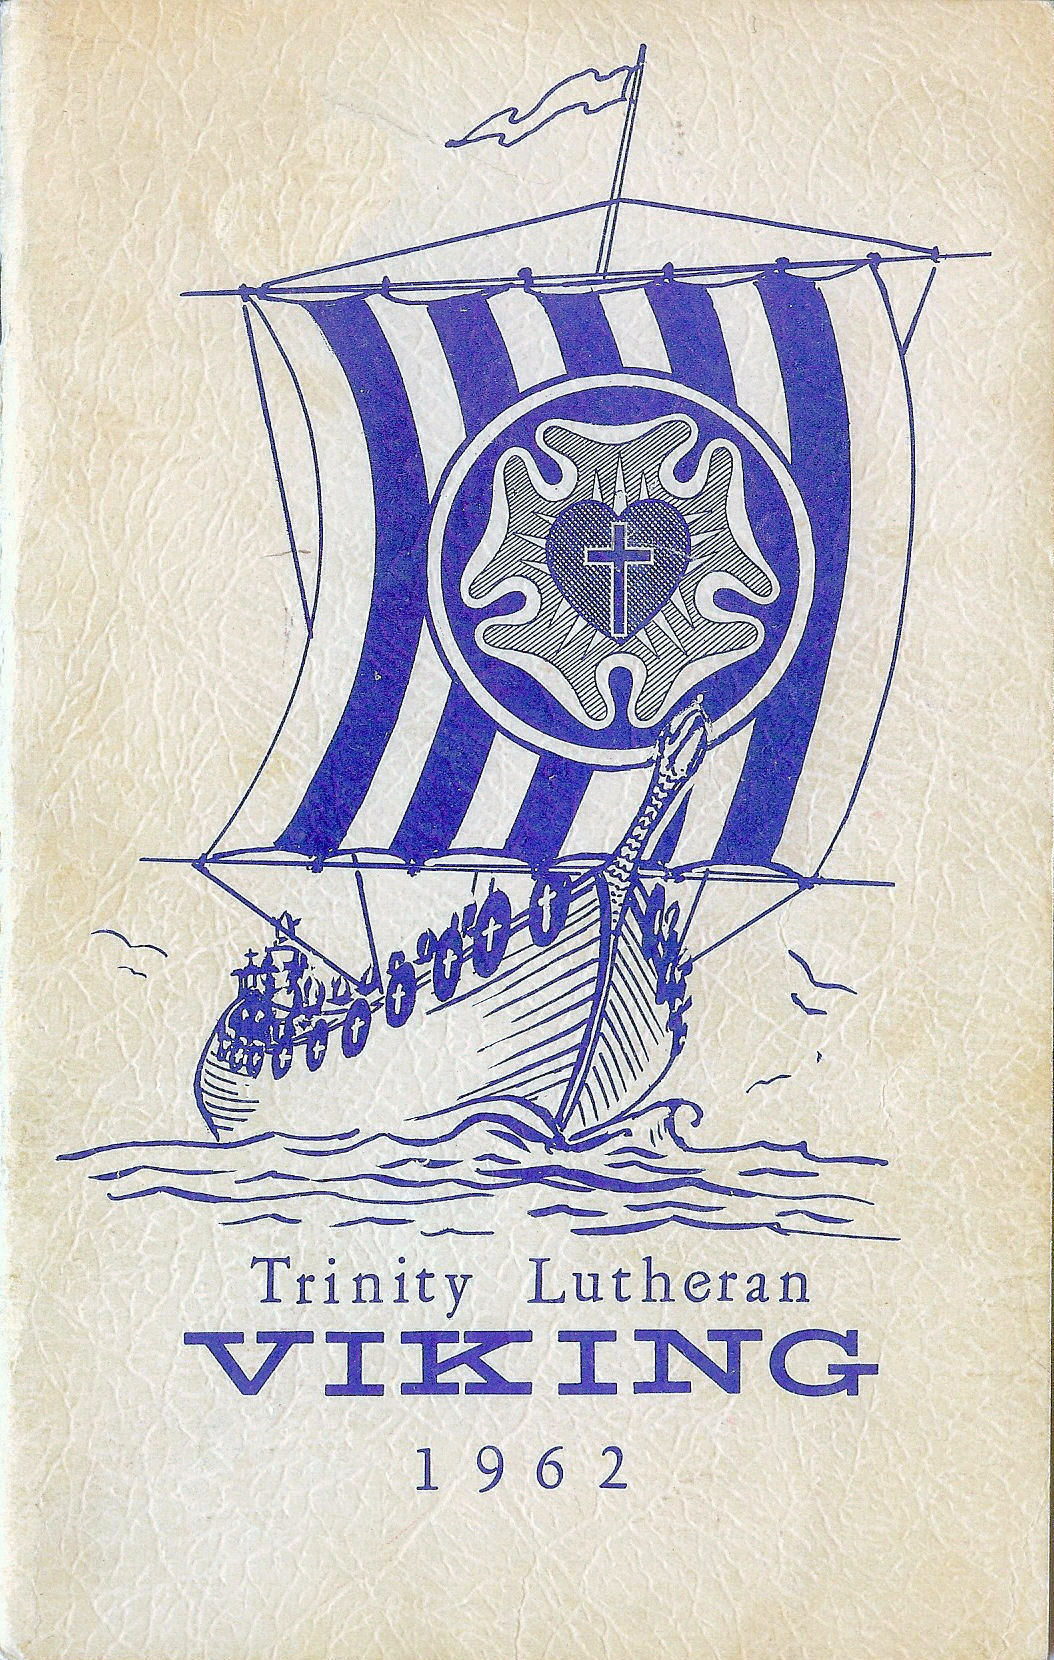 61-62 Yearbook Cover